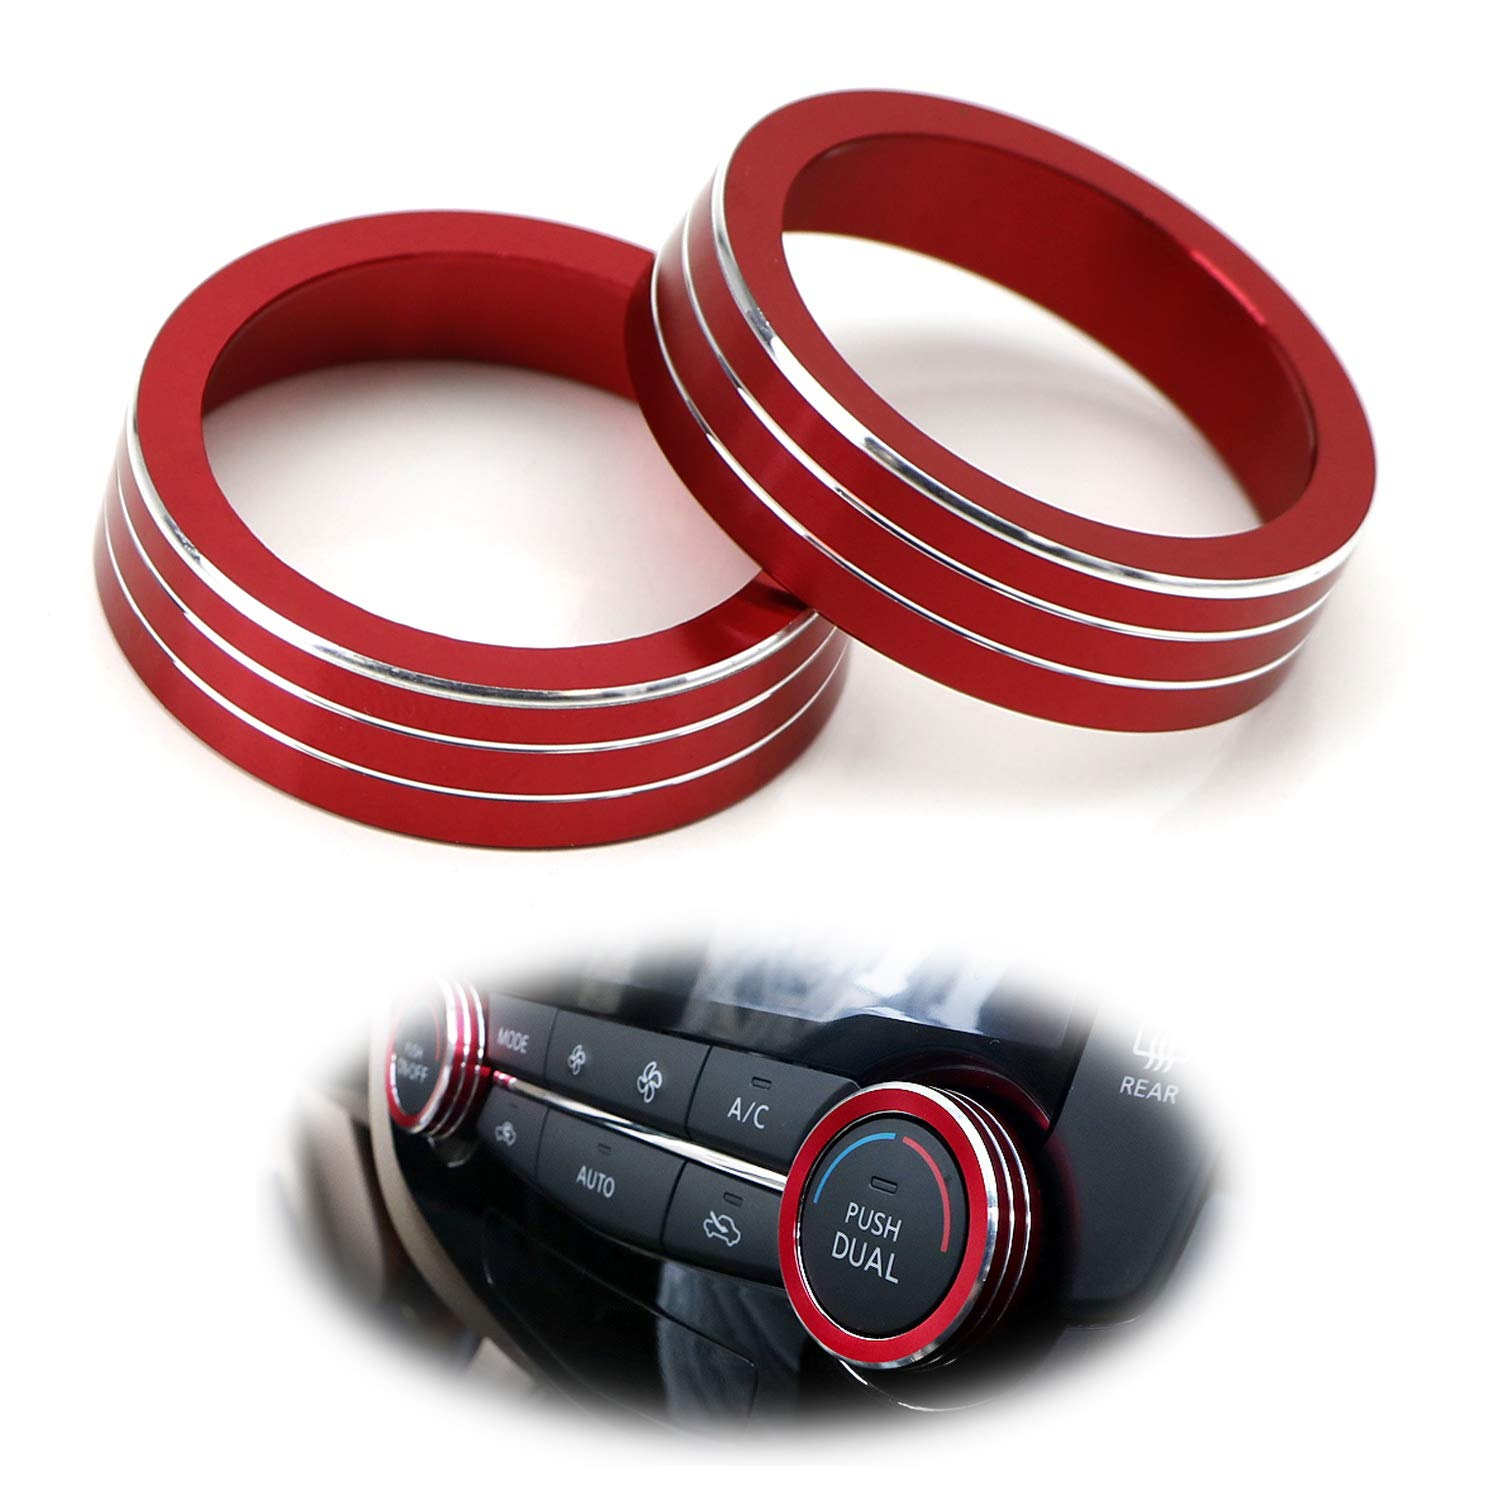 X-Trail iJDMTOY 2pcs Red Anodized Aluminum AC Climate Control Ring Knob Covers For 2014-up Nissan Rogue